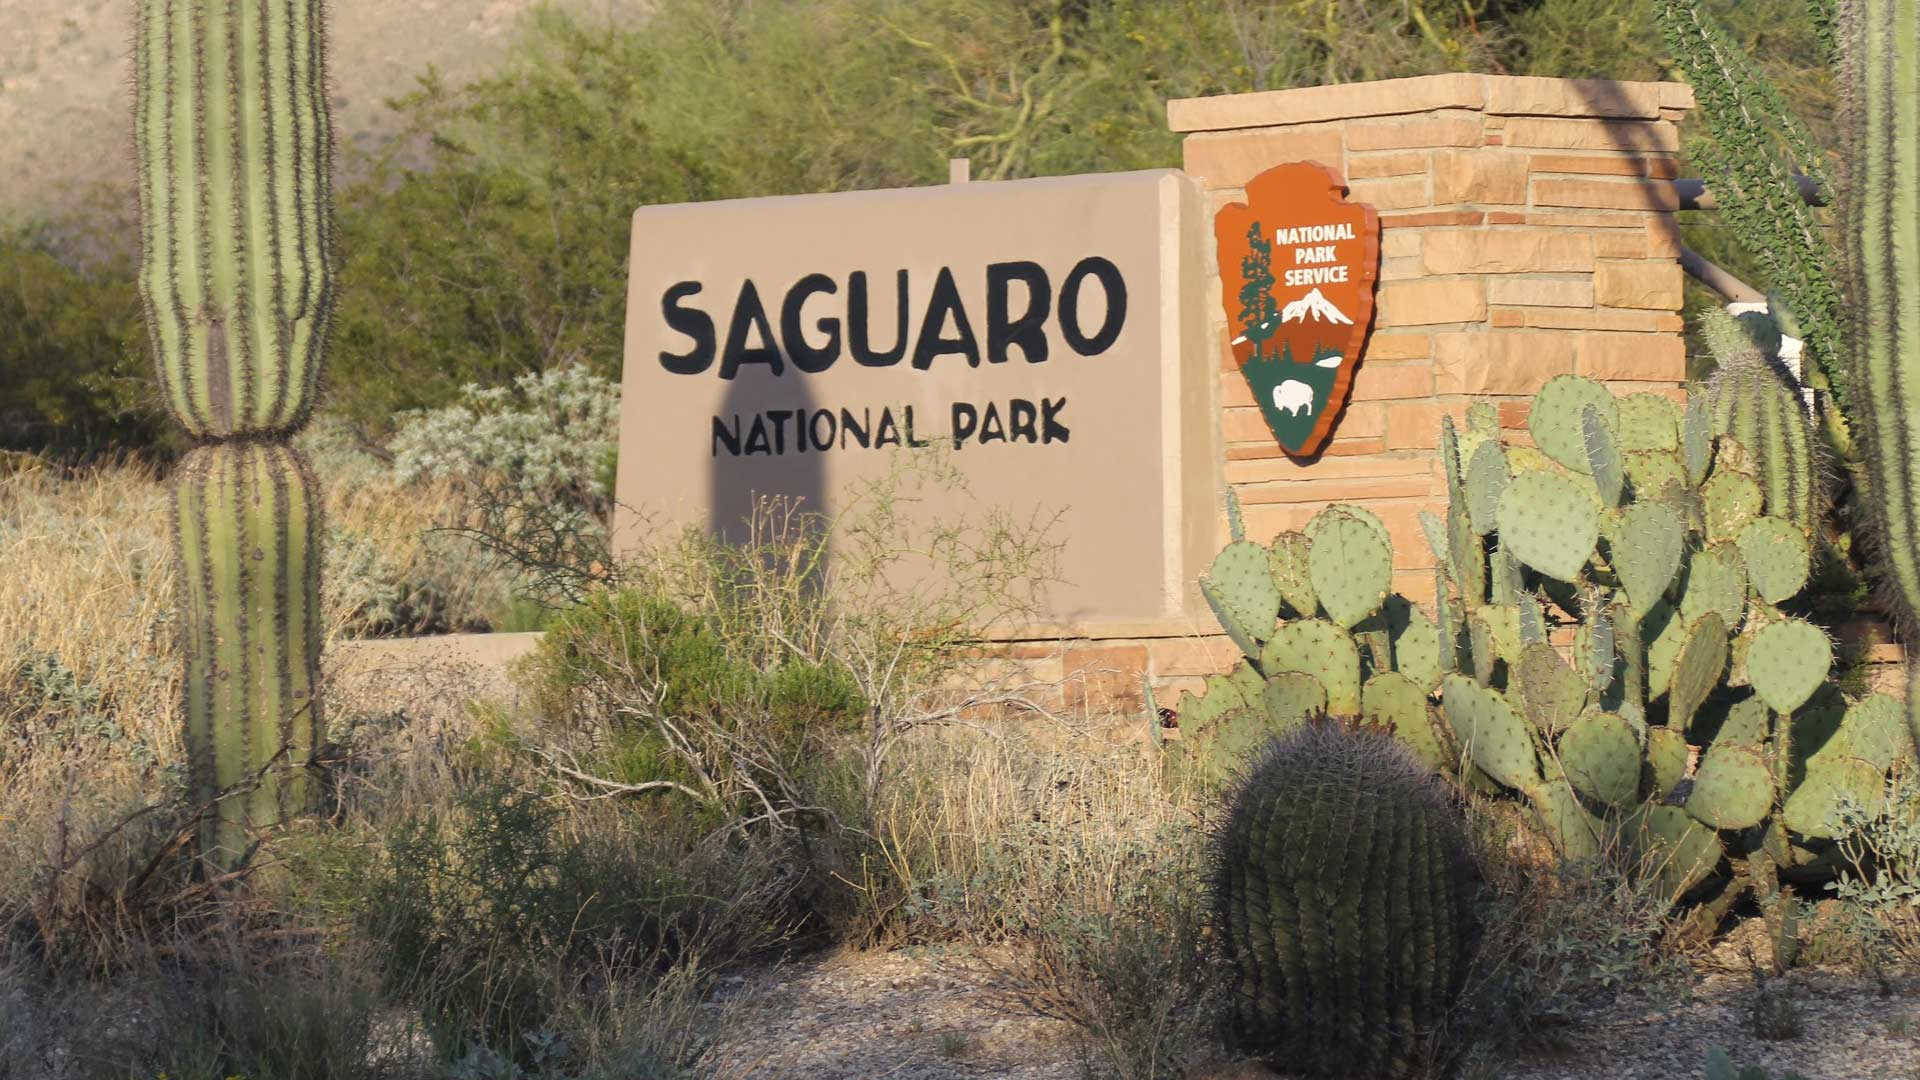 The entrance to Saguaro National Park east.